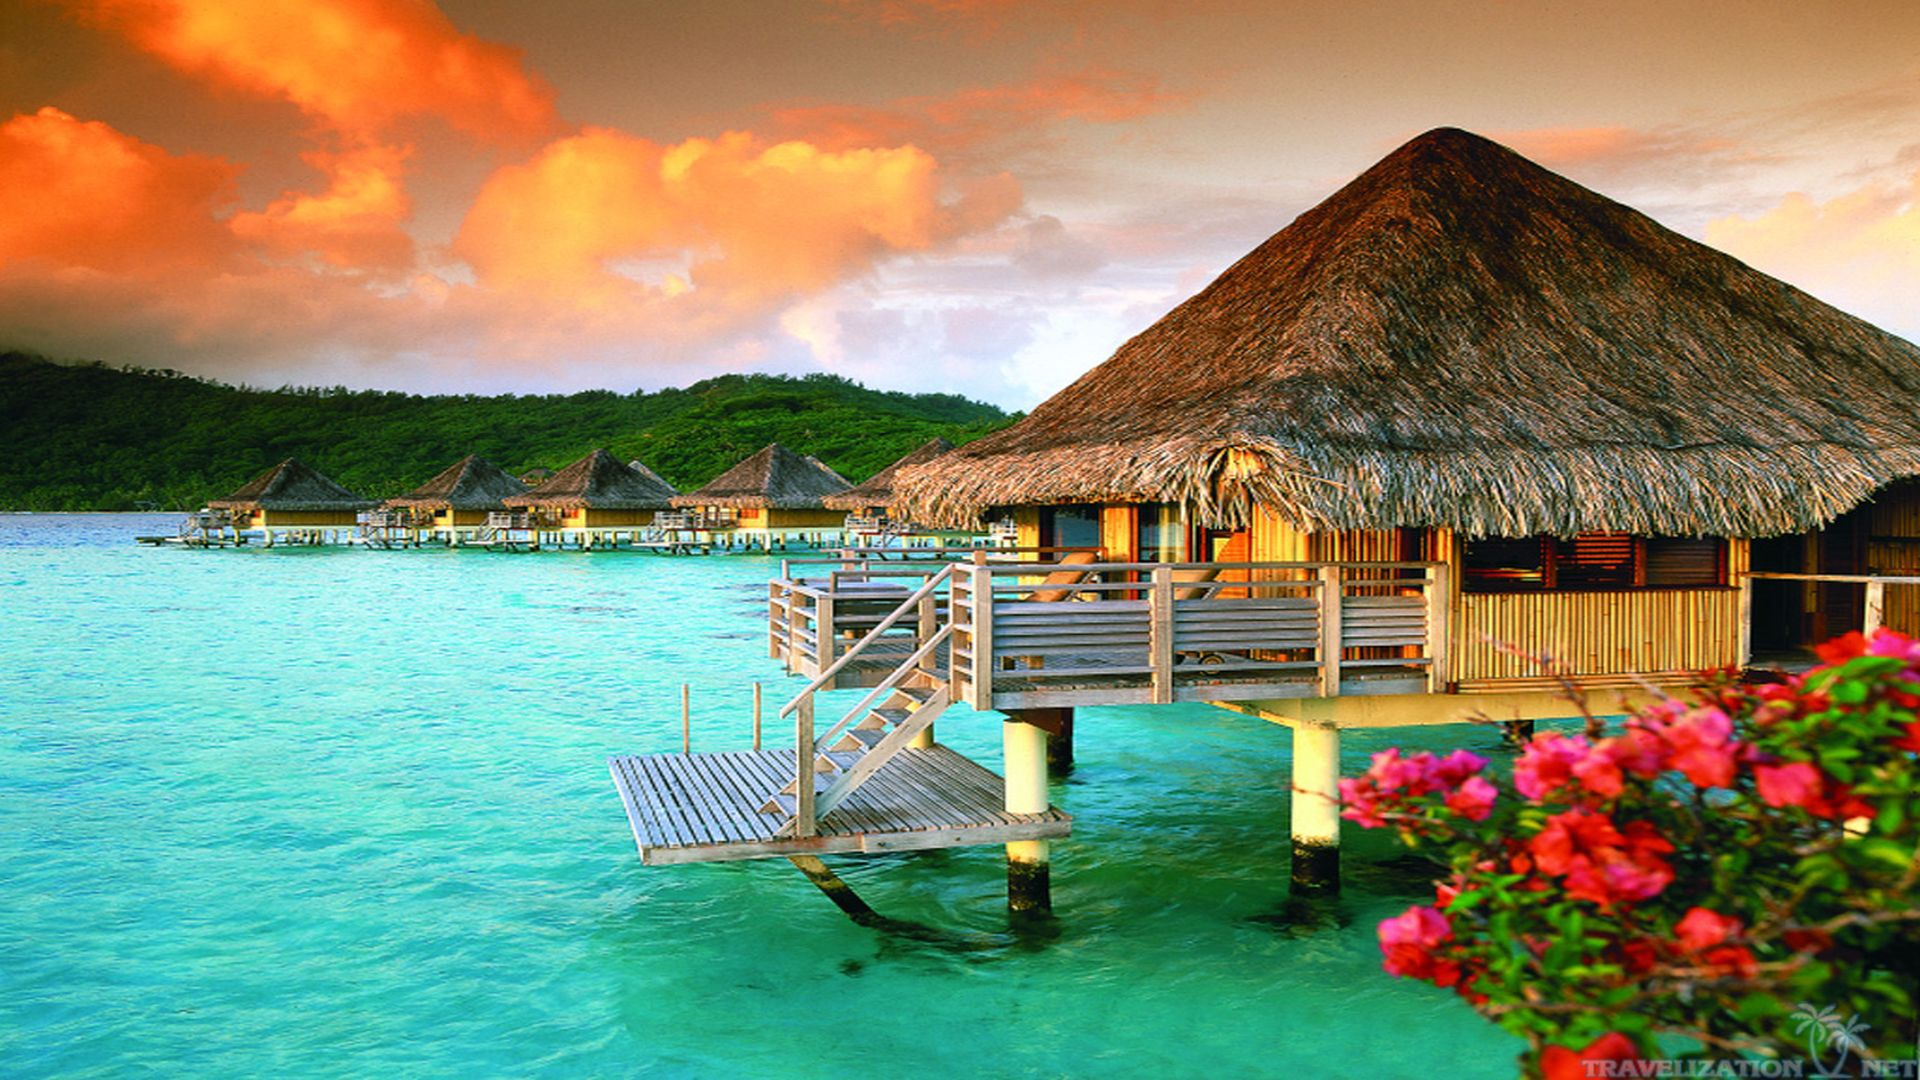 Bora Bora Wallpaper Cool Bora Bora Backgrounds 34 1920x1080